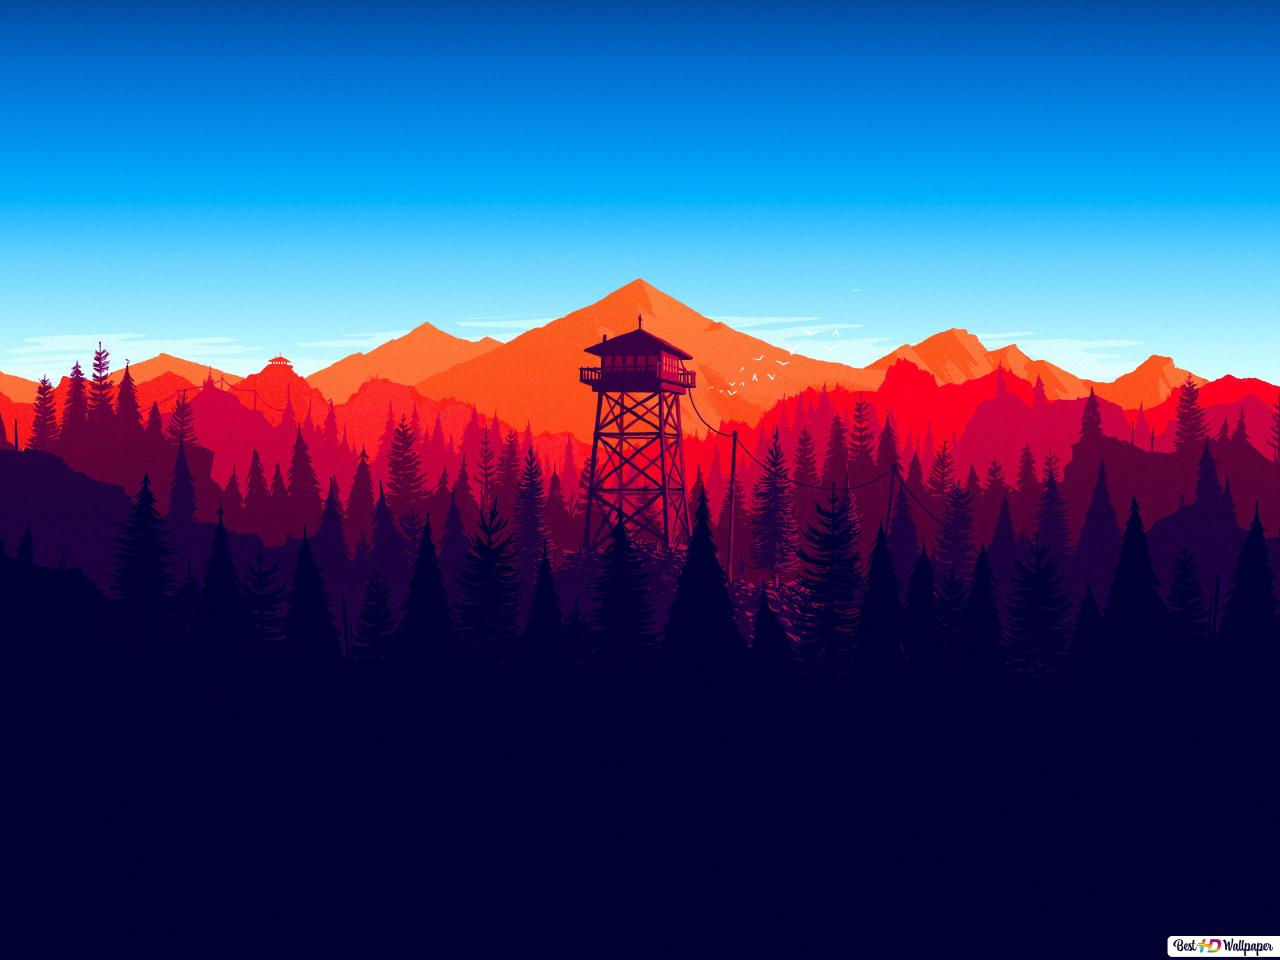 Firewatch Video Game Sunset In Mountains Hd Wallpaper Download Images, Photos, Reviews